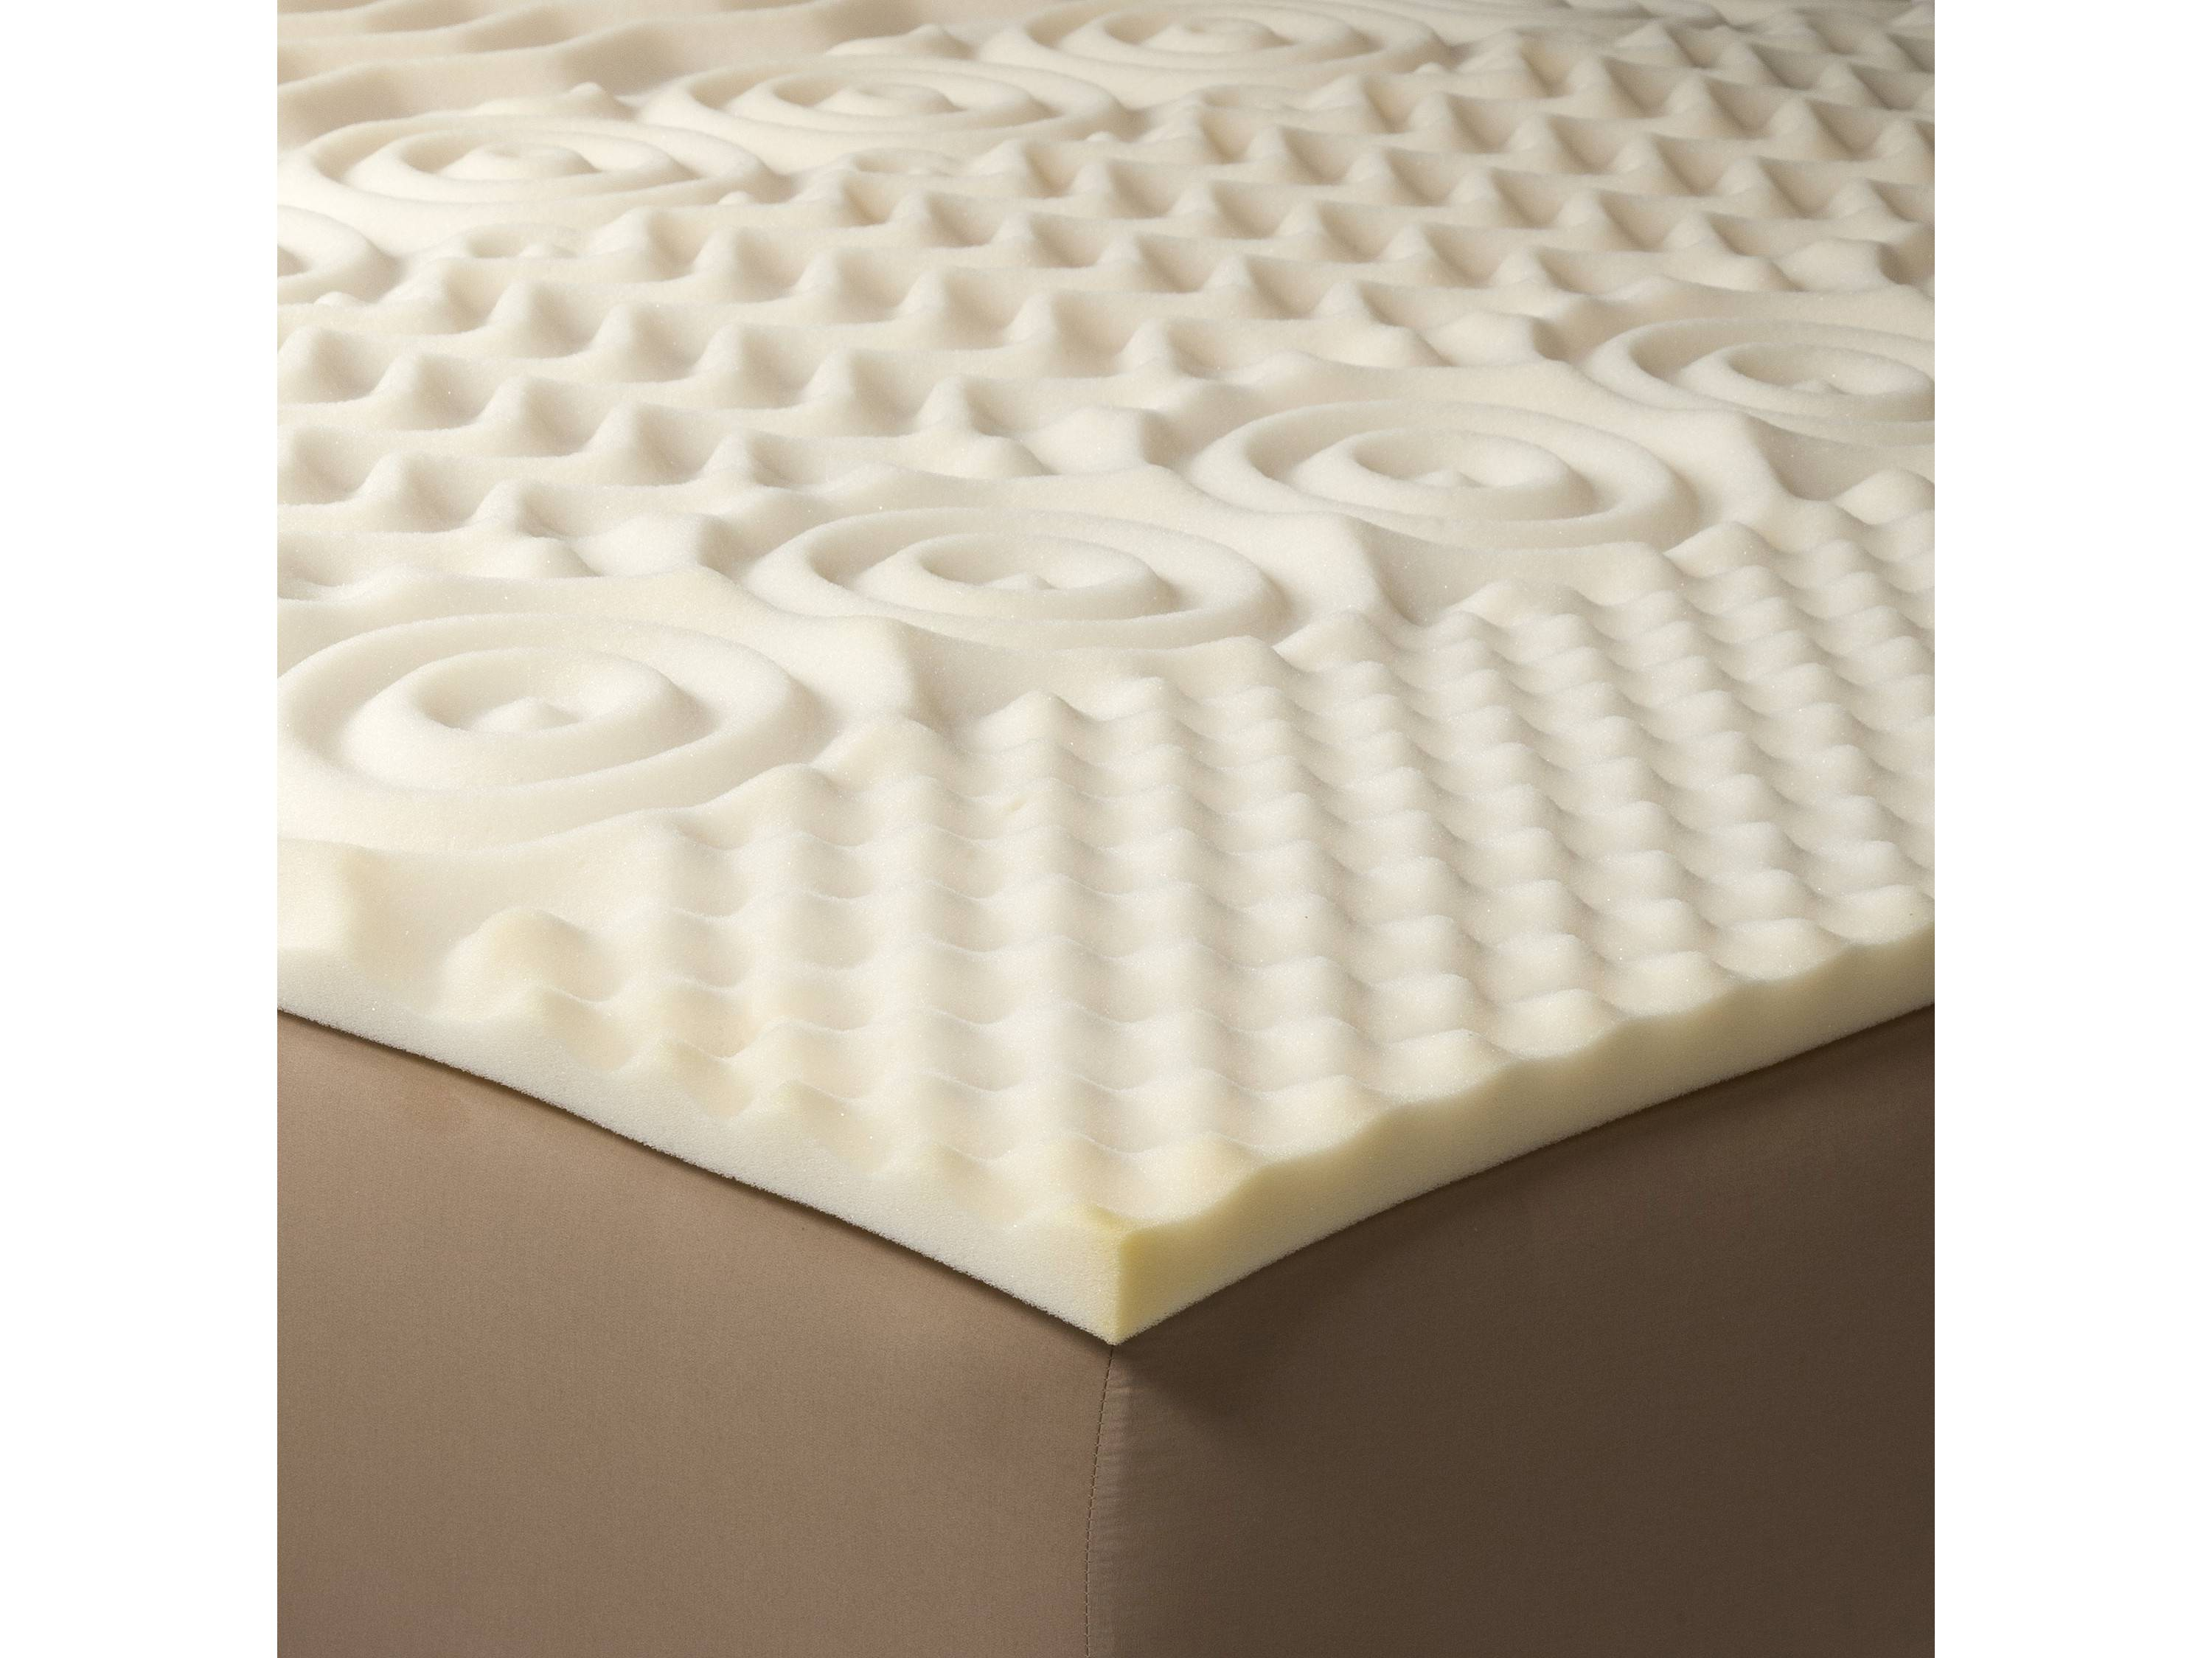 toppers isotonic foam topper review zone memory structure mattress